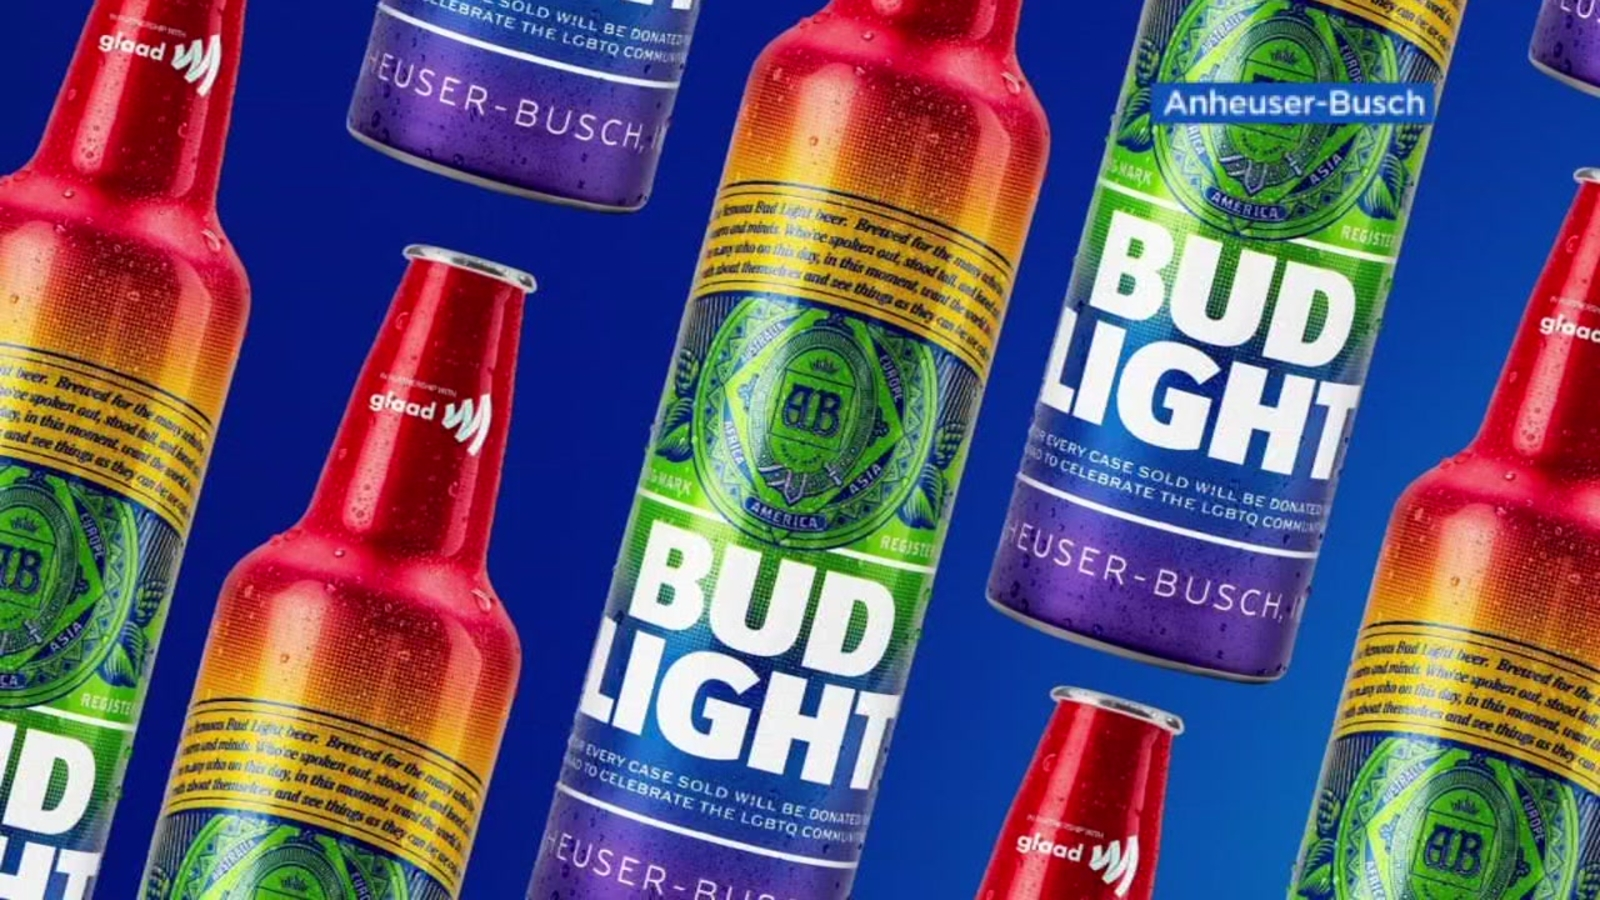 Consumer Conversations Stay Positive as Brands Embrace Pride Month